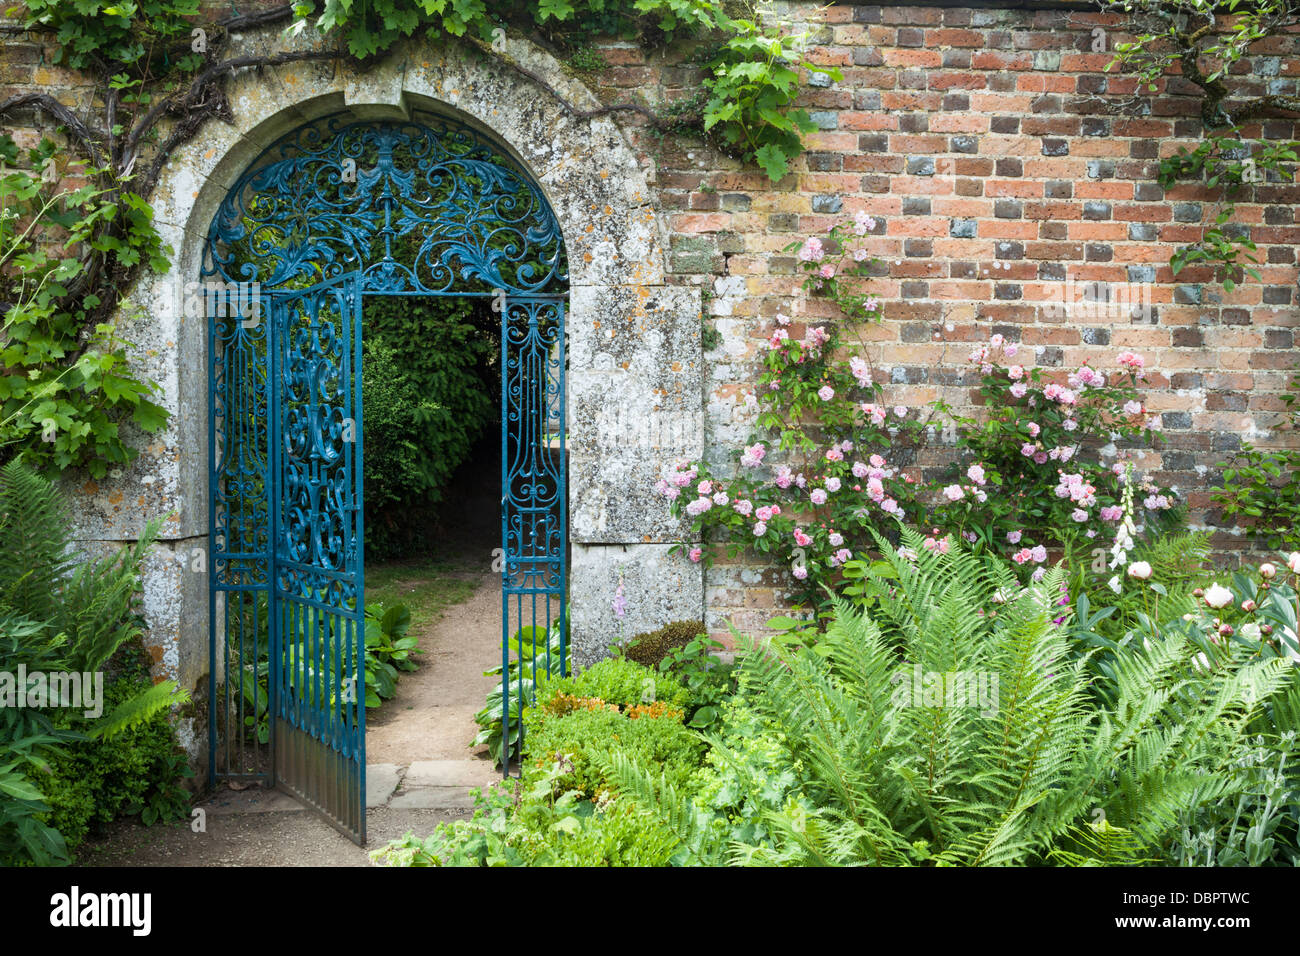 Ornate Wrought Iron Gate Set Within A Cotswold Stone Arch